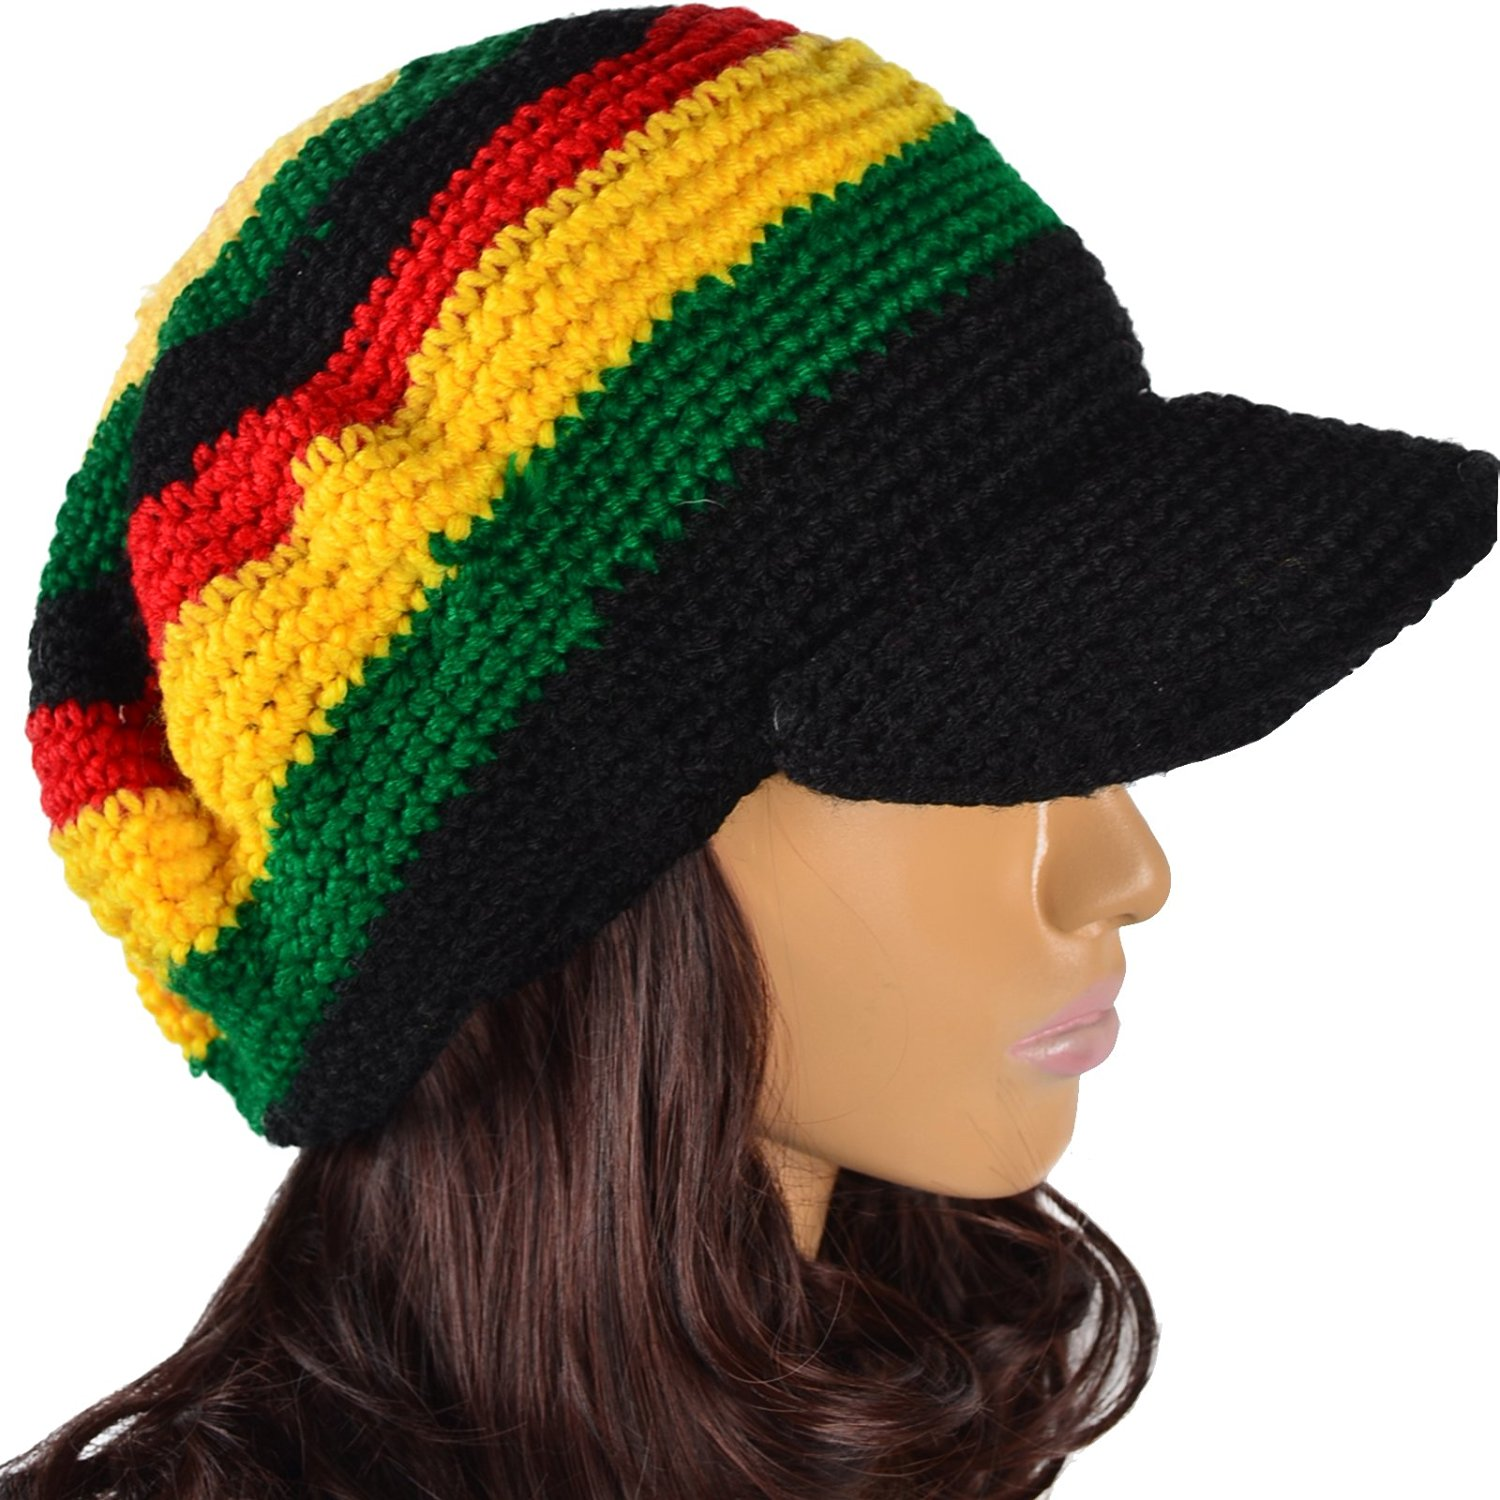 8ffca105e Cheap Rasta Hat Knit, find Rasta Hat Knit deals on line at Alibaba.com